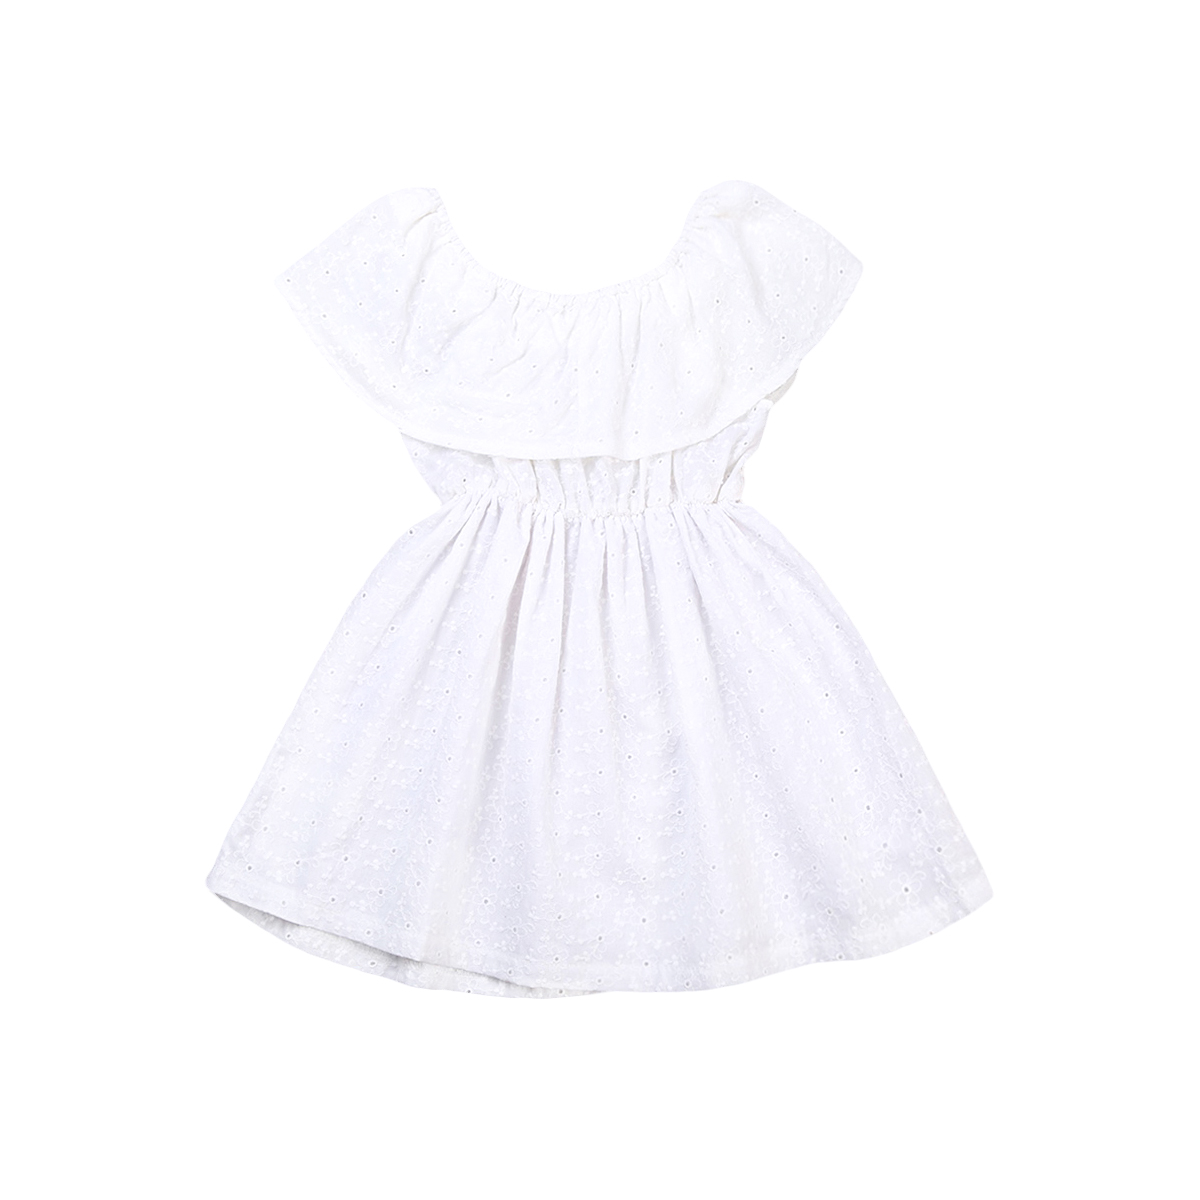 2017 Summer Children Girls White Lace Dress Off Shoulder Ruffled Collar Princess Girl Party Dresses One Pieces Sundress Clothes darwin водолазки